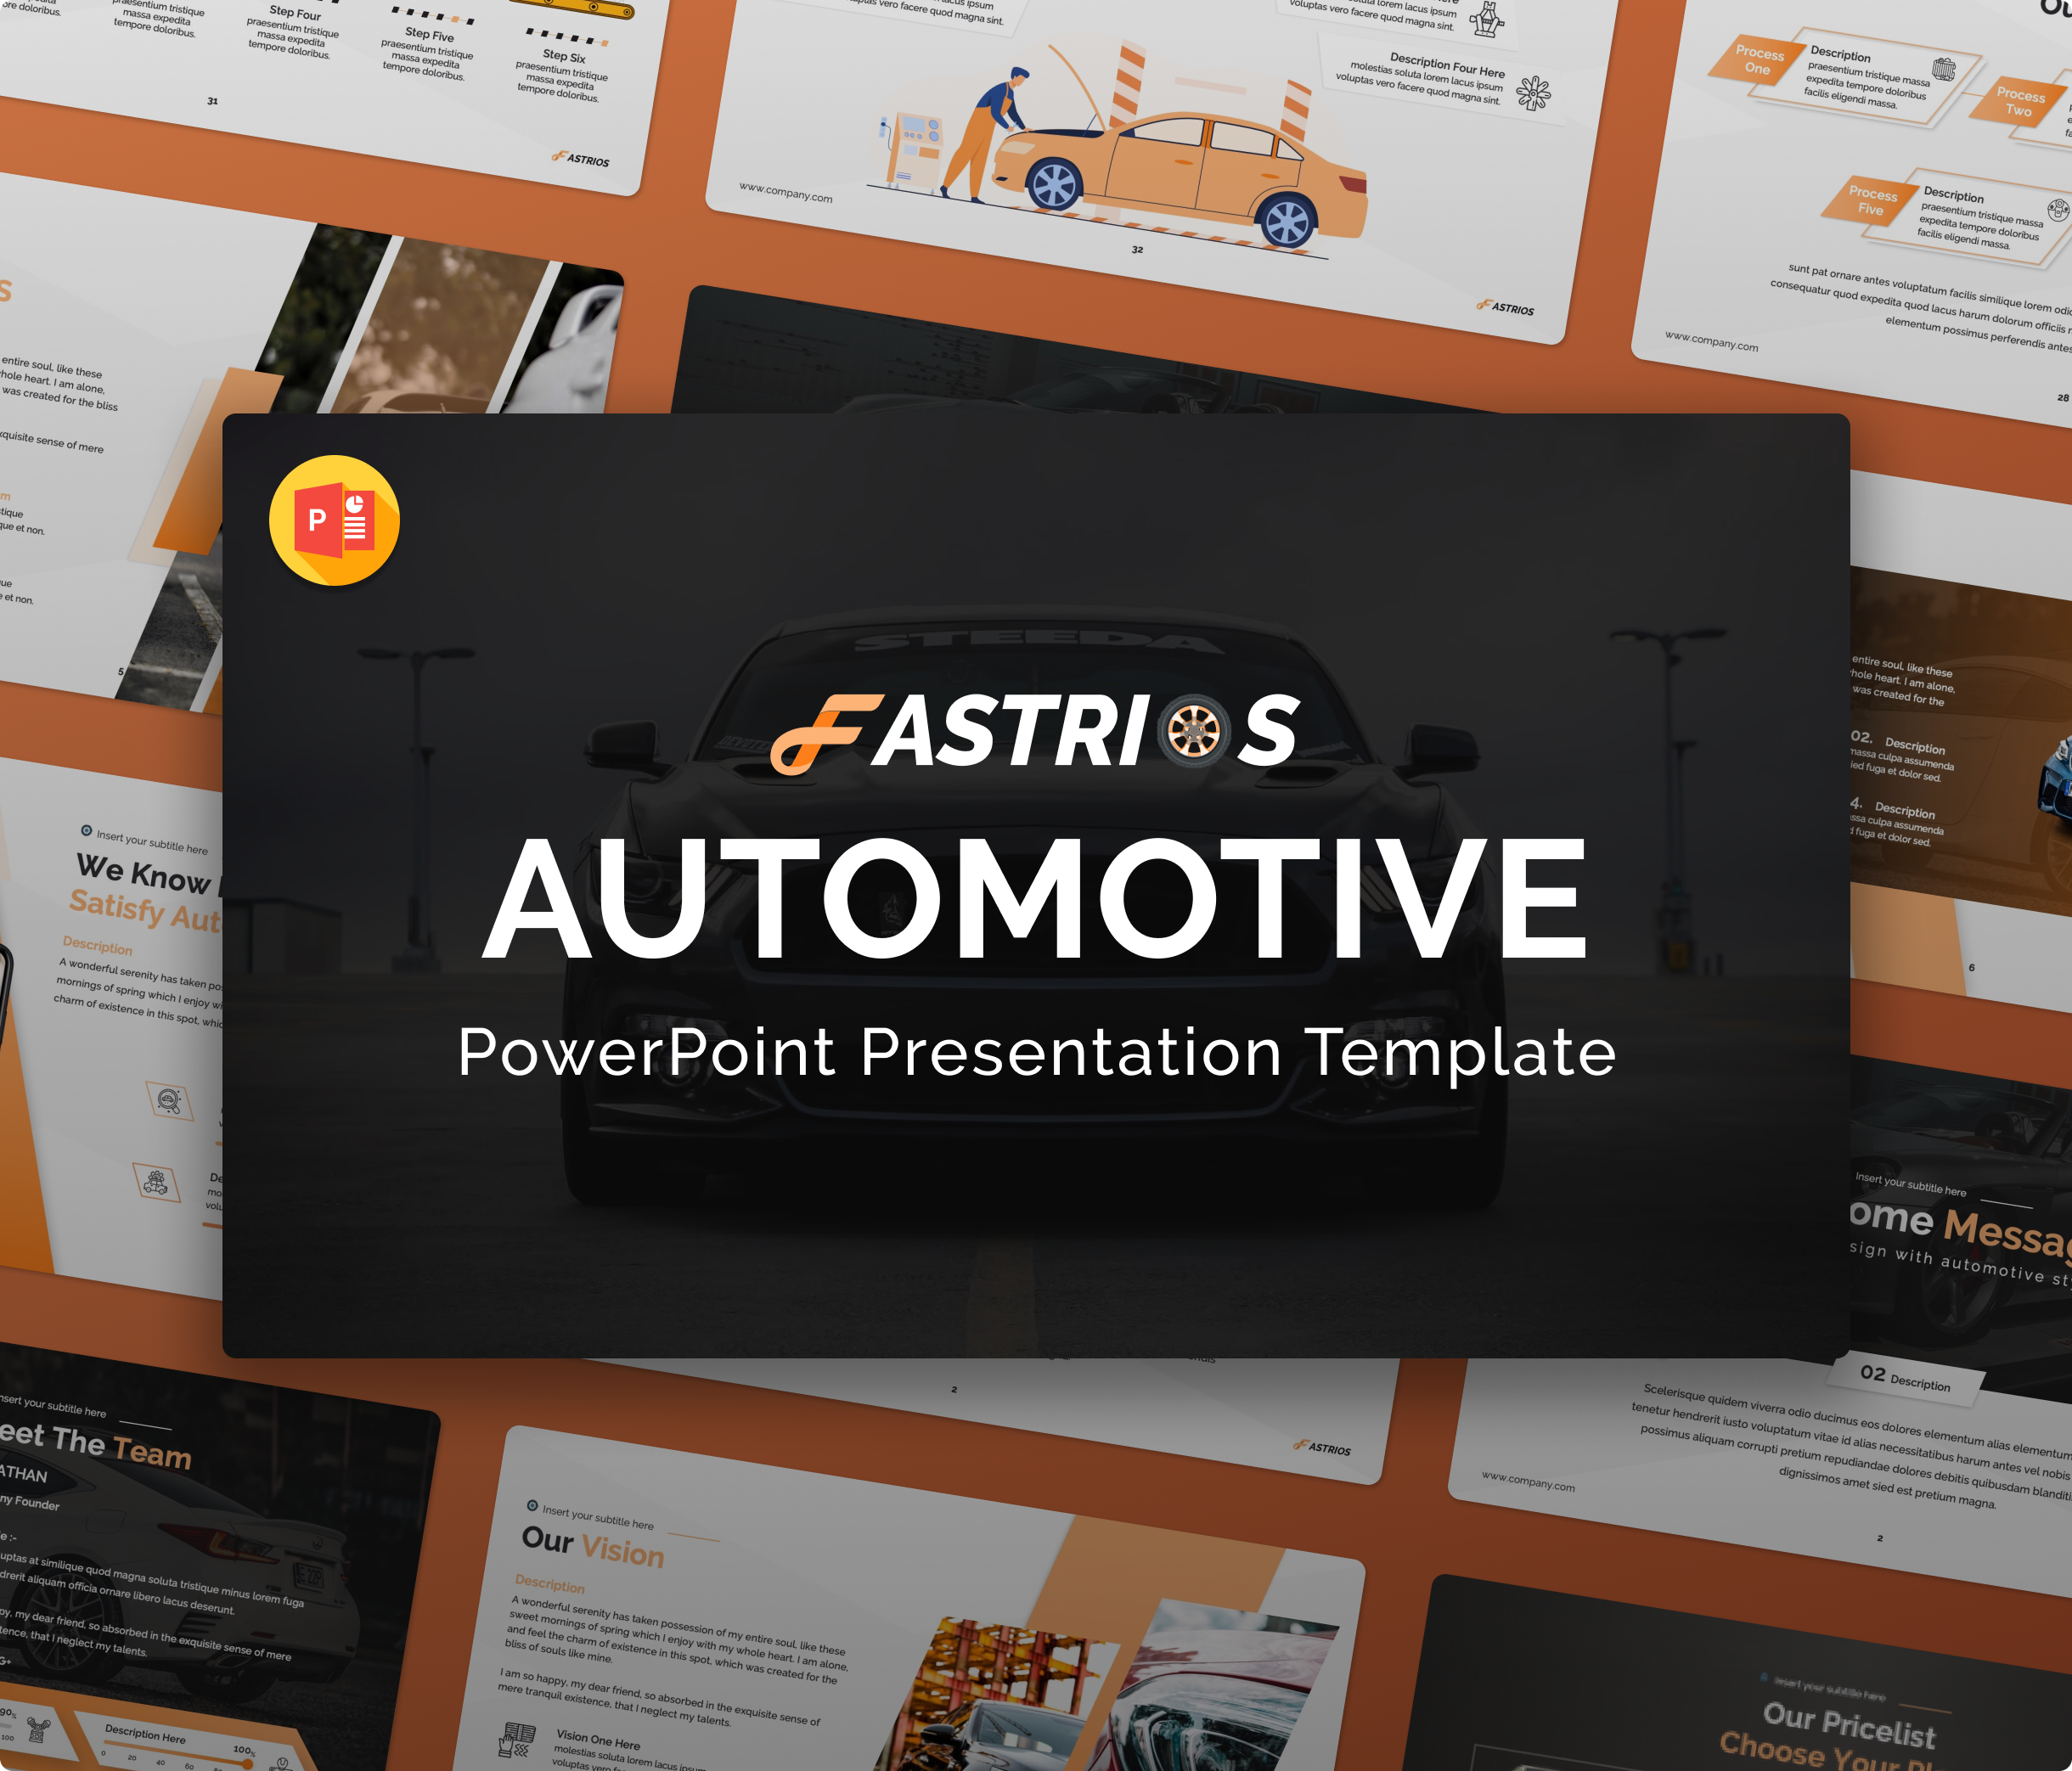 Fastrios – Automotive PowerPoint Presentation Template